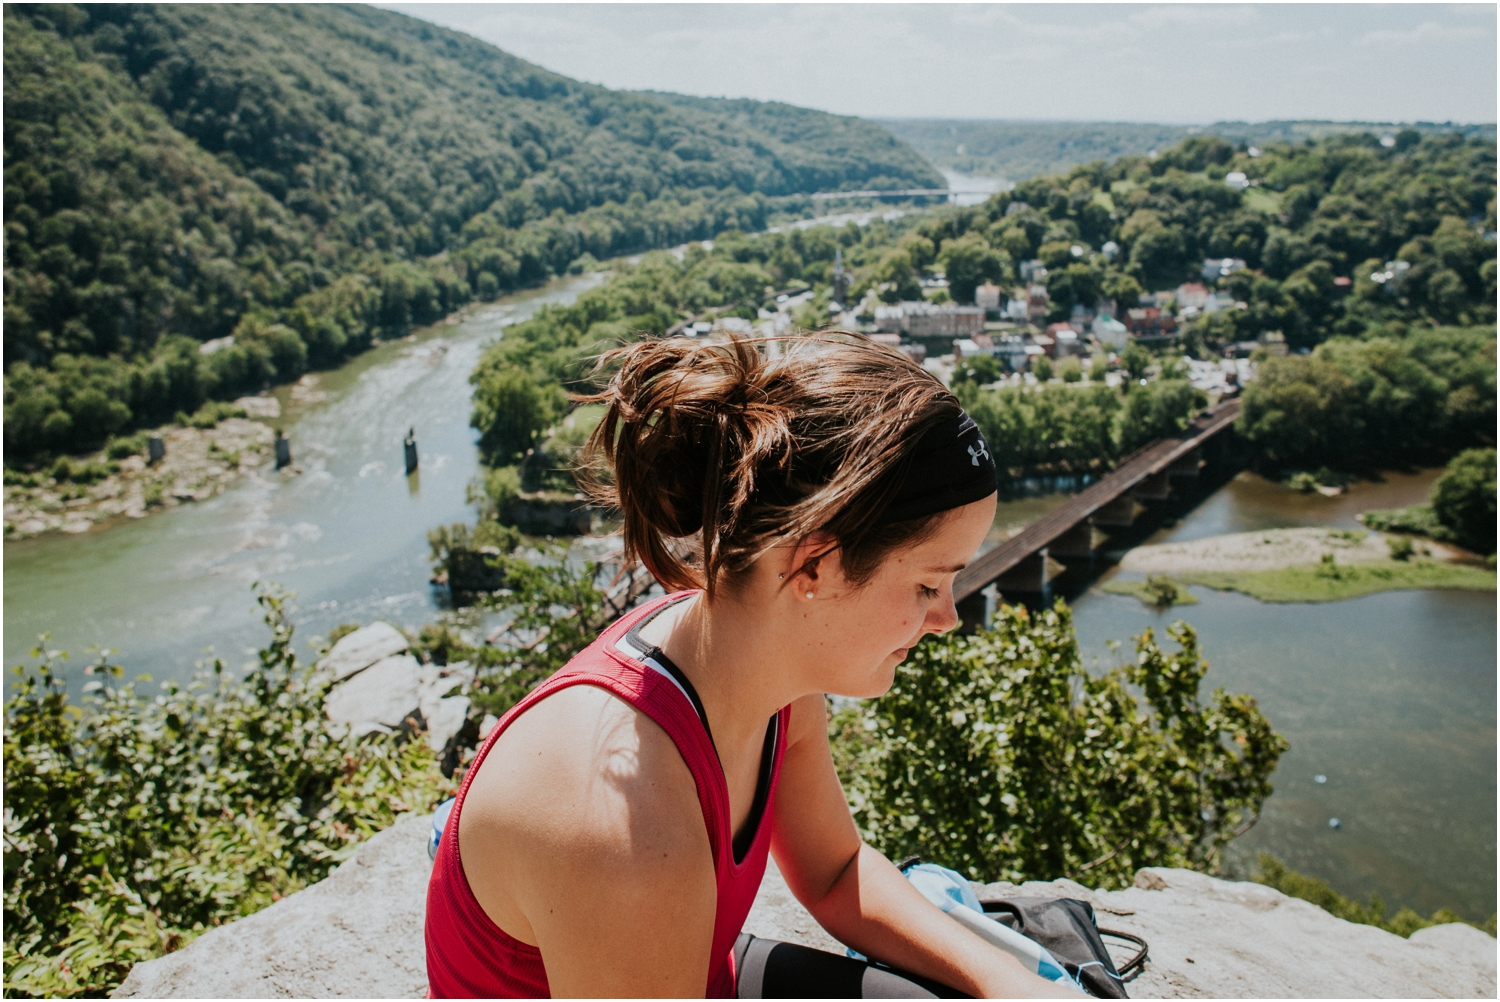 katy-sergent-photography-proposal-appalachian-trail-annapolis-rocks-adventurous-wedding-couples-intimate-elopement-hiking-backpacking-camping-photographer-johnson-city-tn-northeast-tennessee_0027.jpg